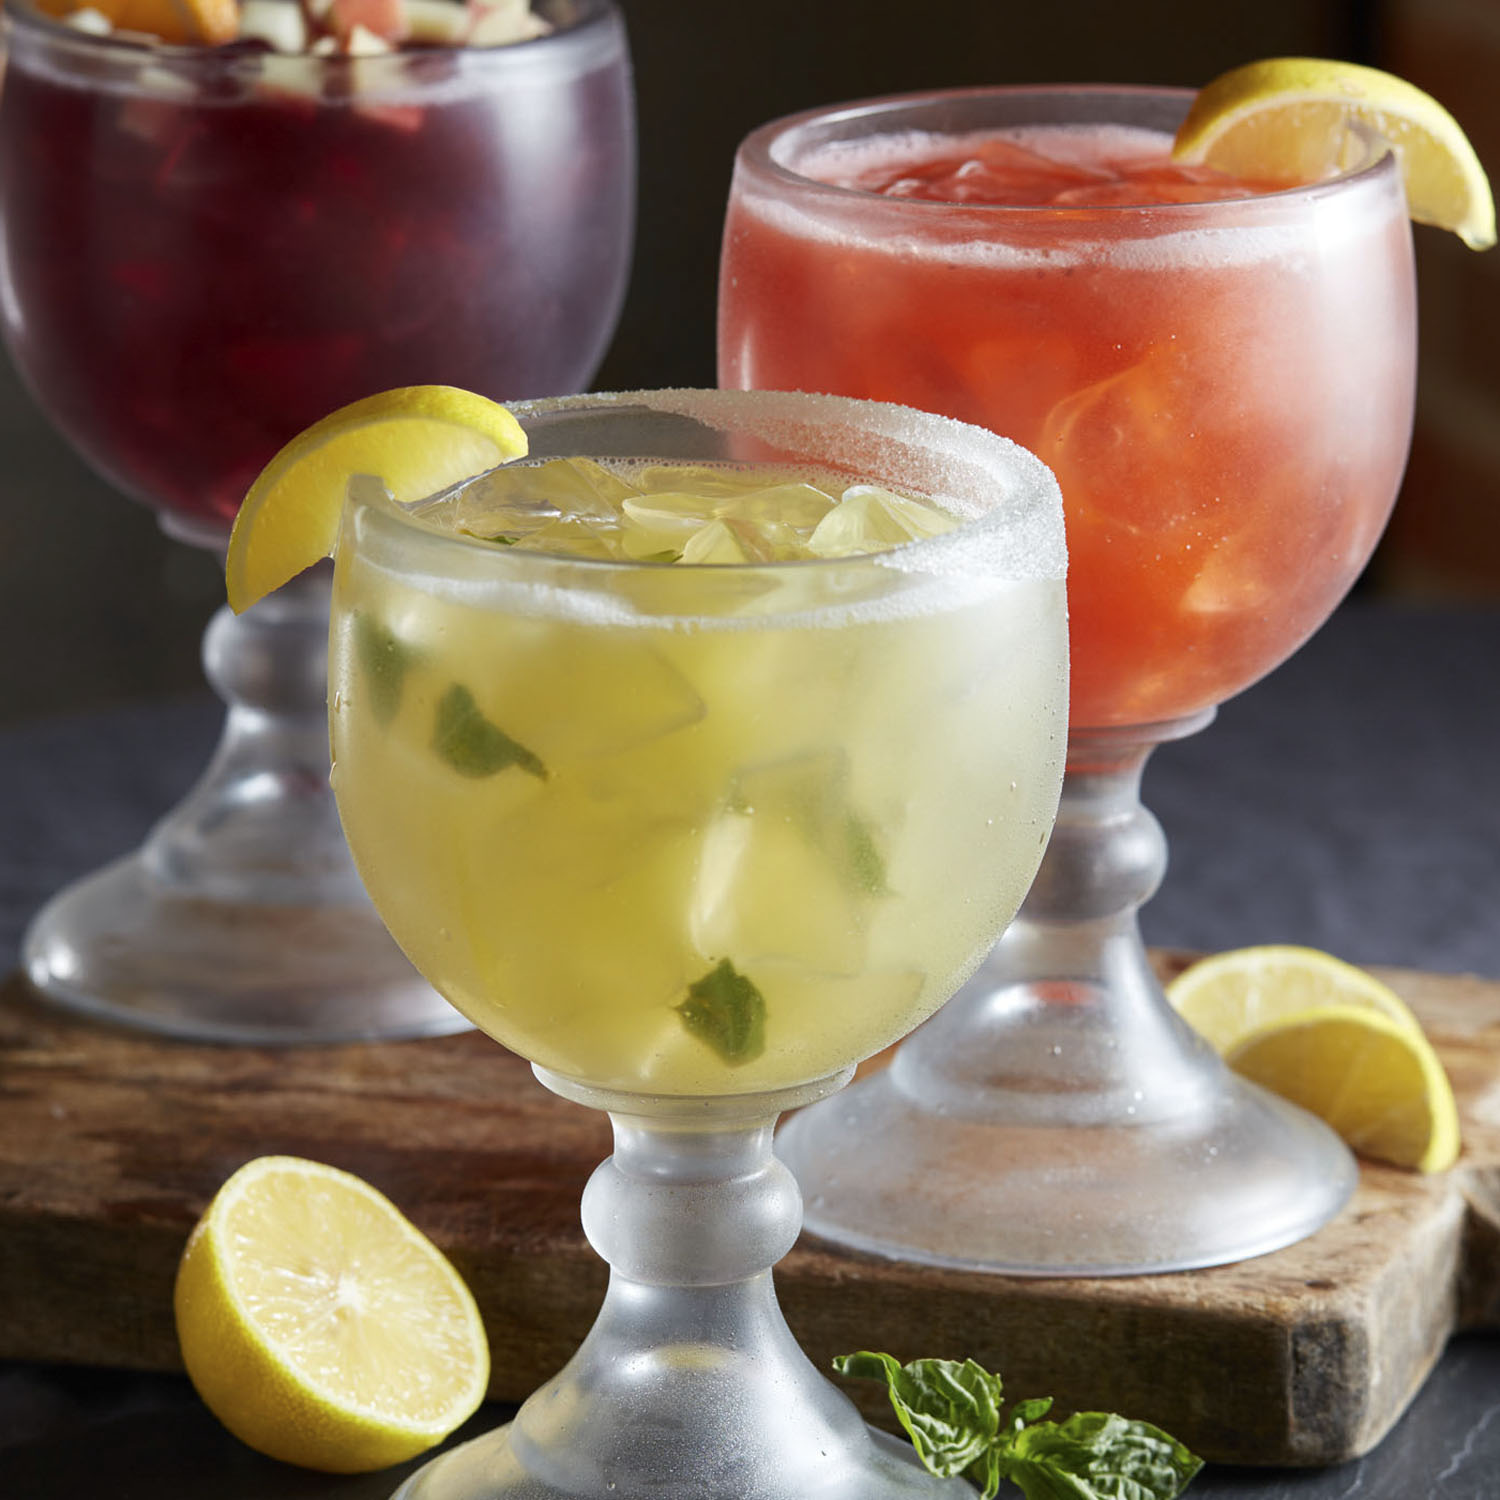 basil-lemonade-strawberry-margarita-and-sangria.jpg